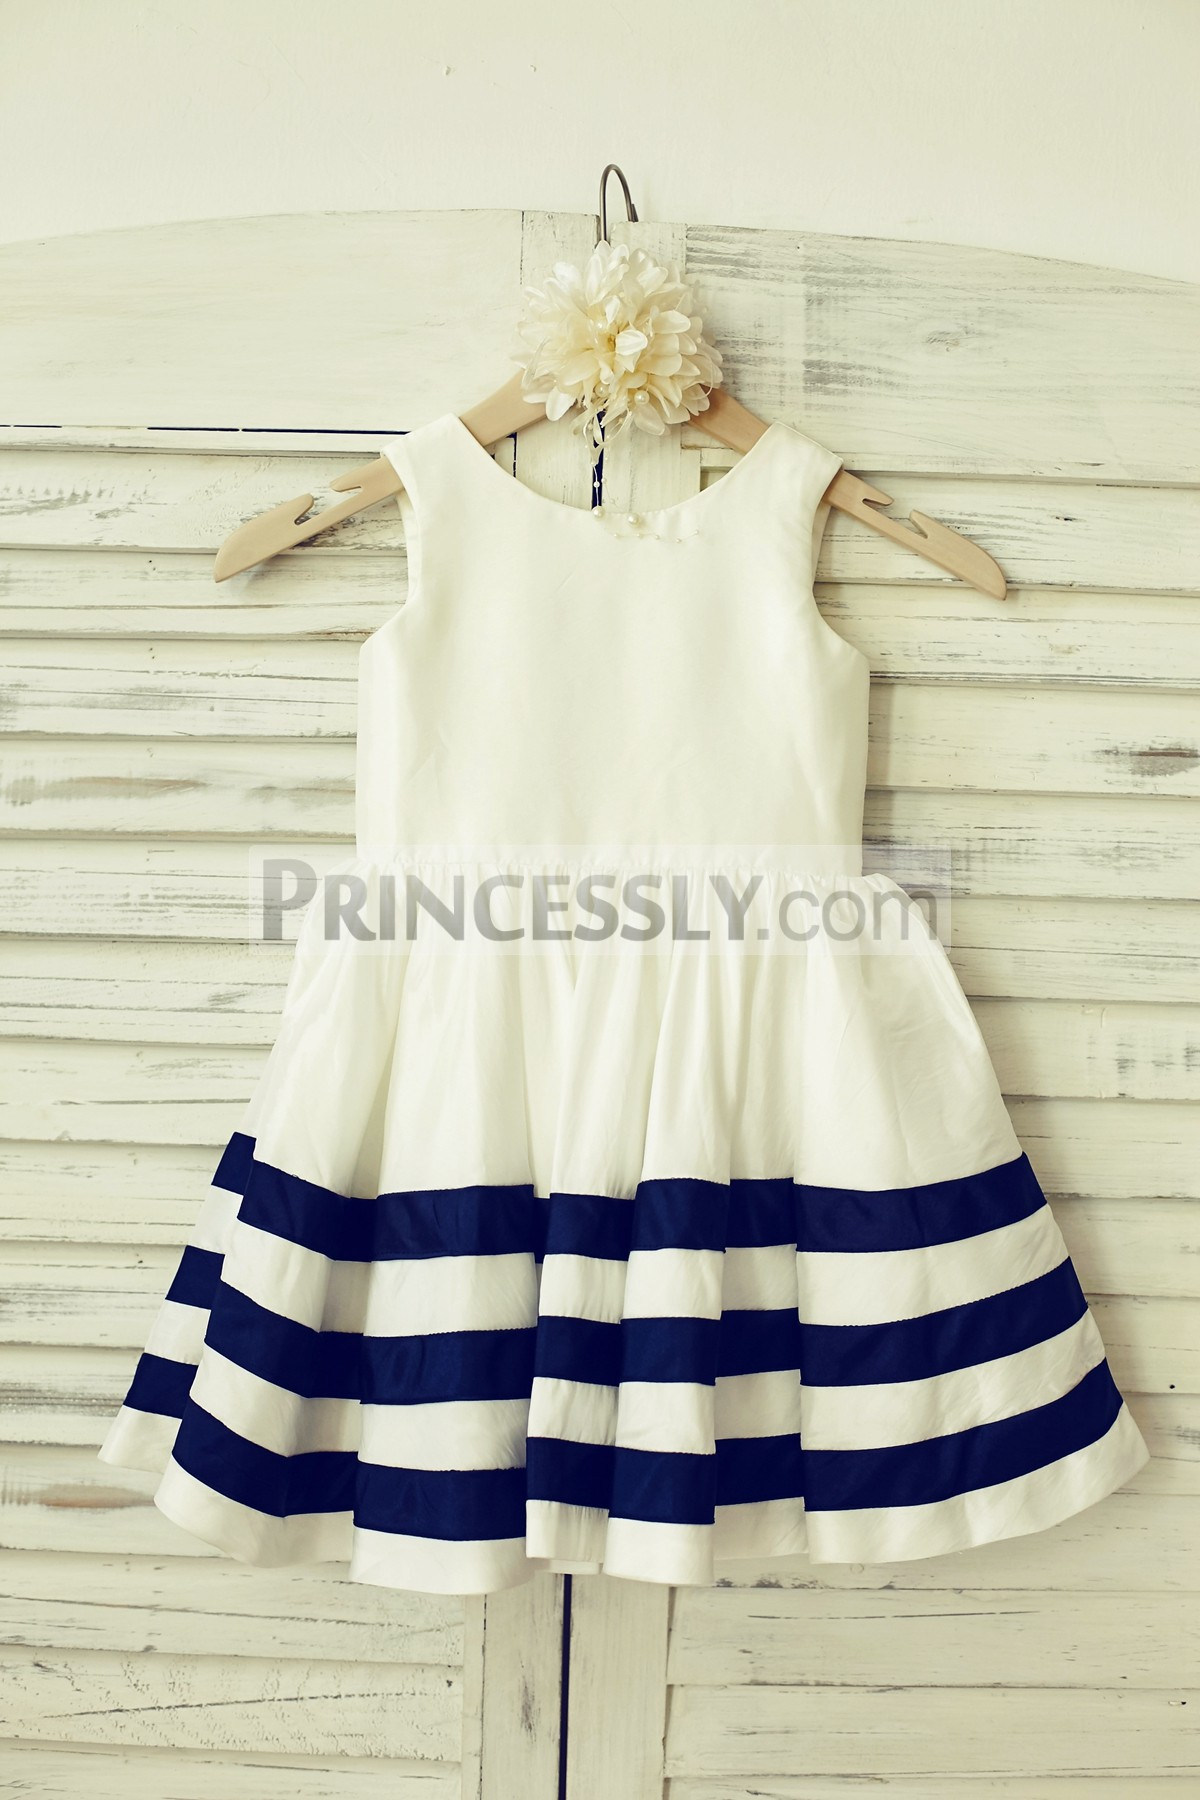 Ivory taffeta flower girl dress with navy blue stripes on skirt